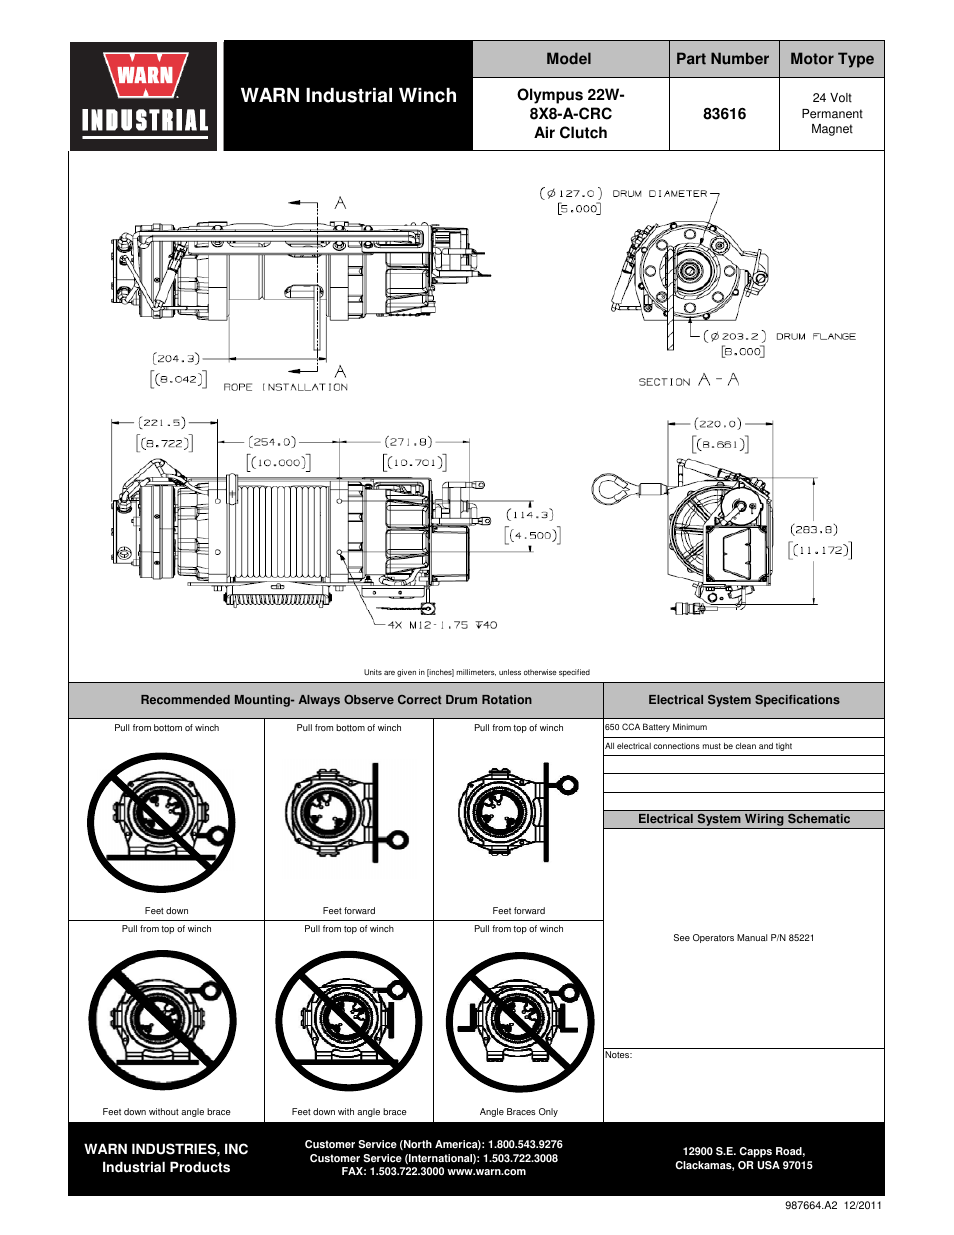 warn industrial winch | warn olympus 22 22w-8x8-a-crc user manual